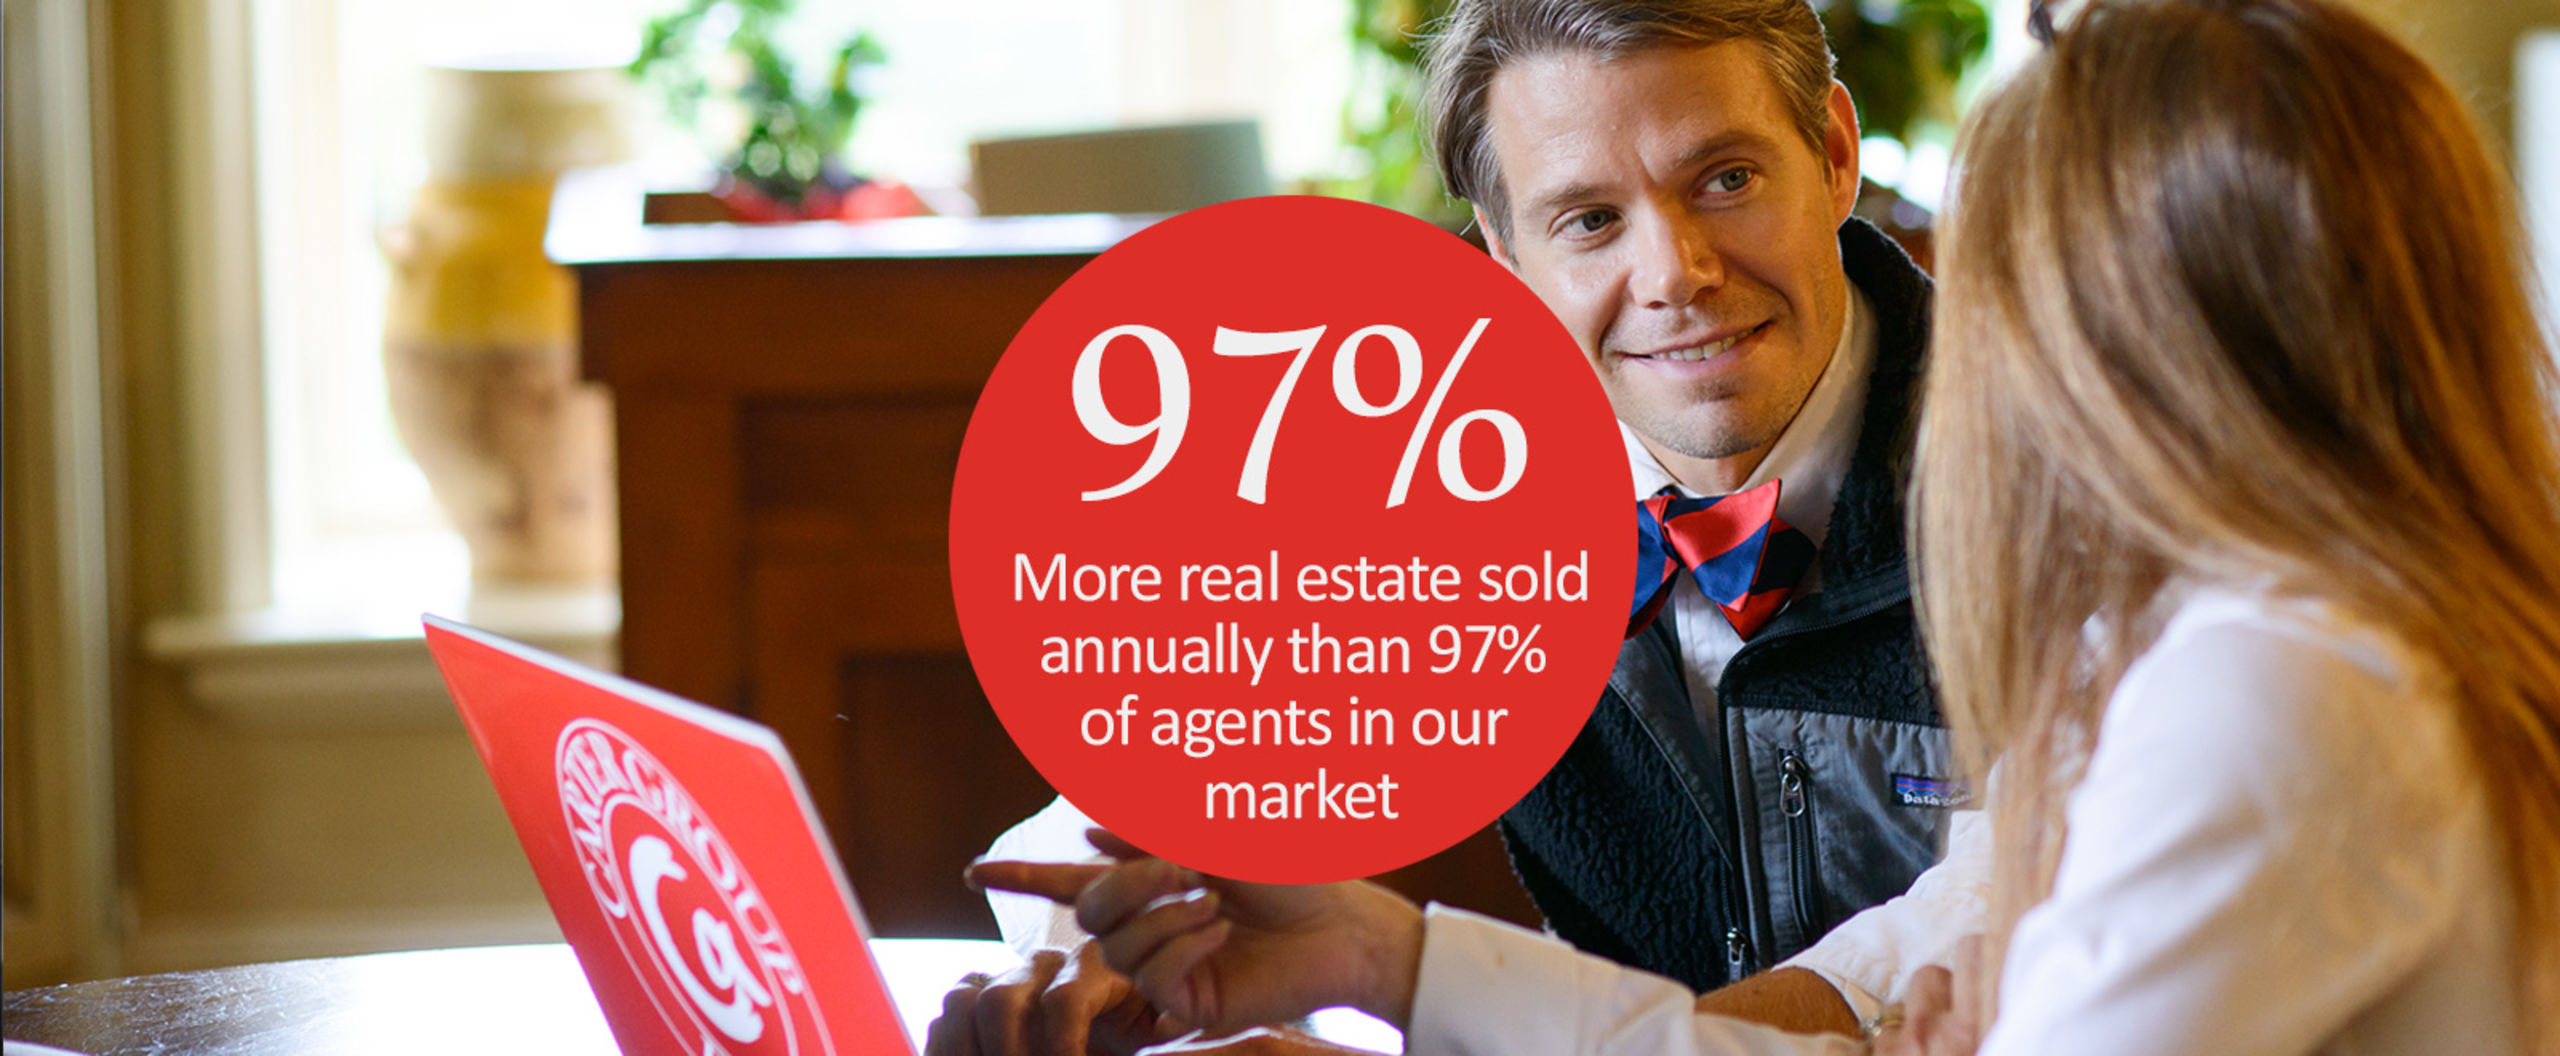 Selling more real estate annually than 97% of agents in our market